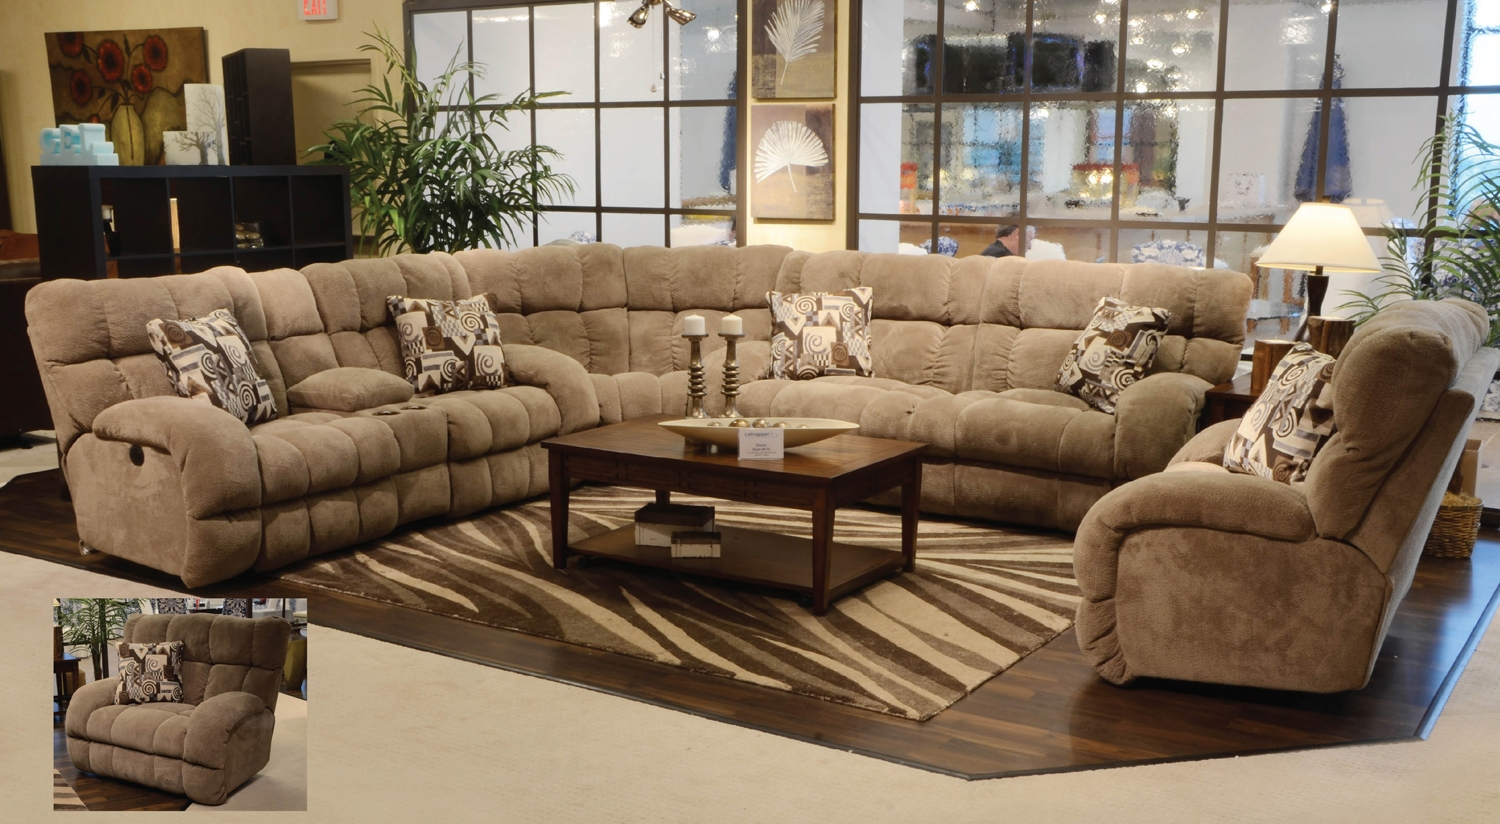 large modern sectional sofas photo - 7